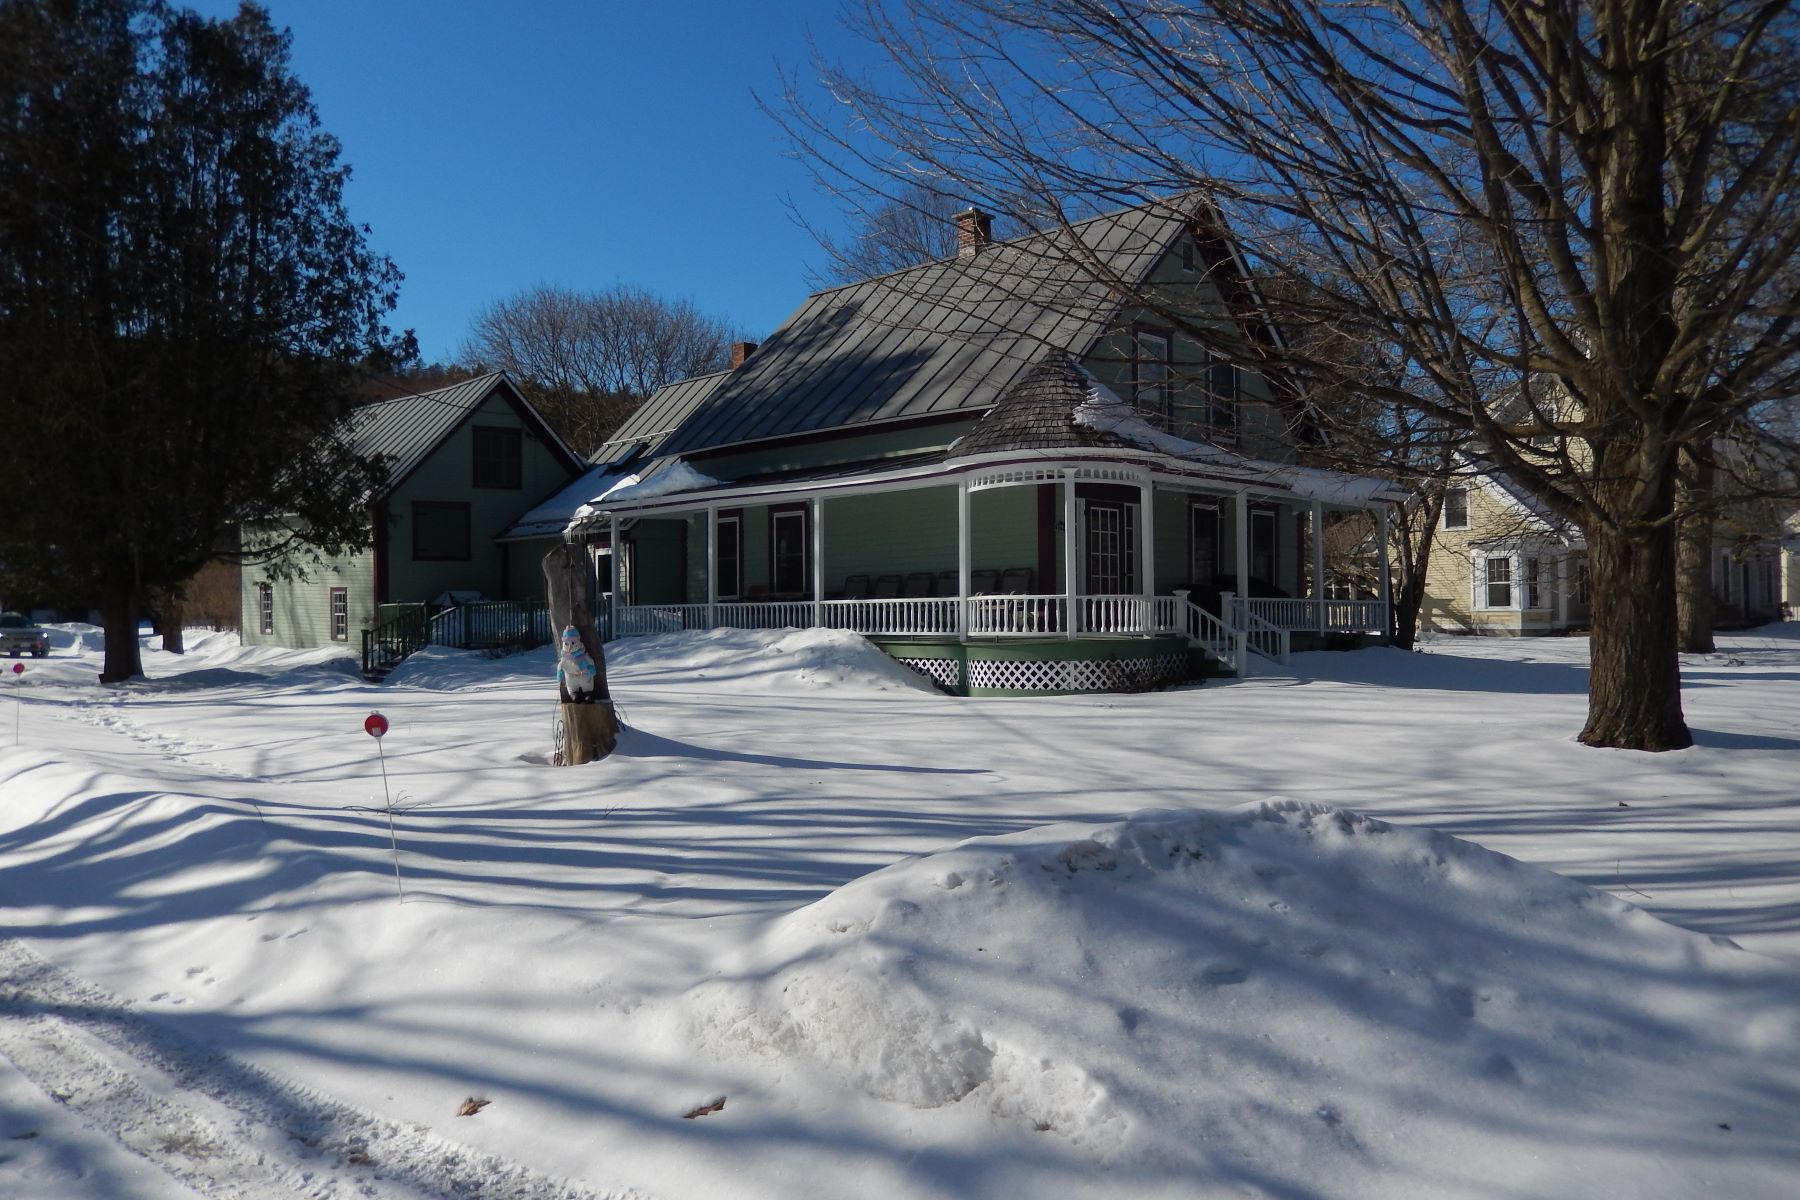 Single Family Home for Sale at Three Bedroom Victorian in Newbury 5294 Main Street South Newbury, Vermont 05051 United States